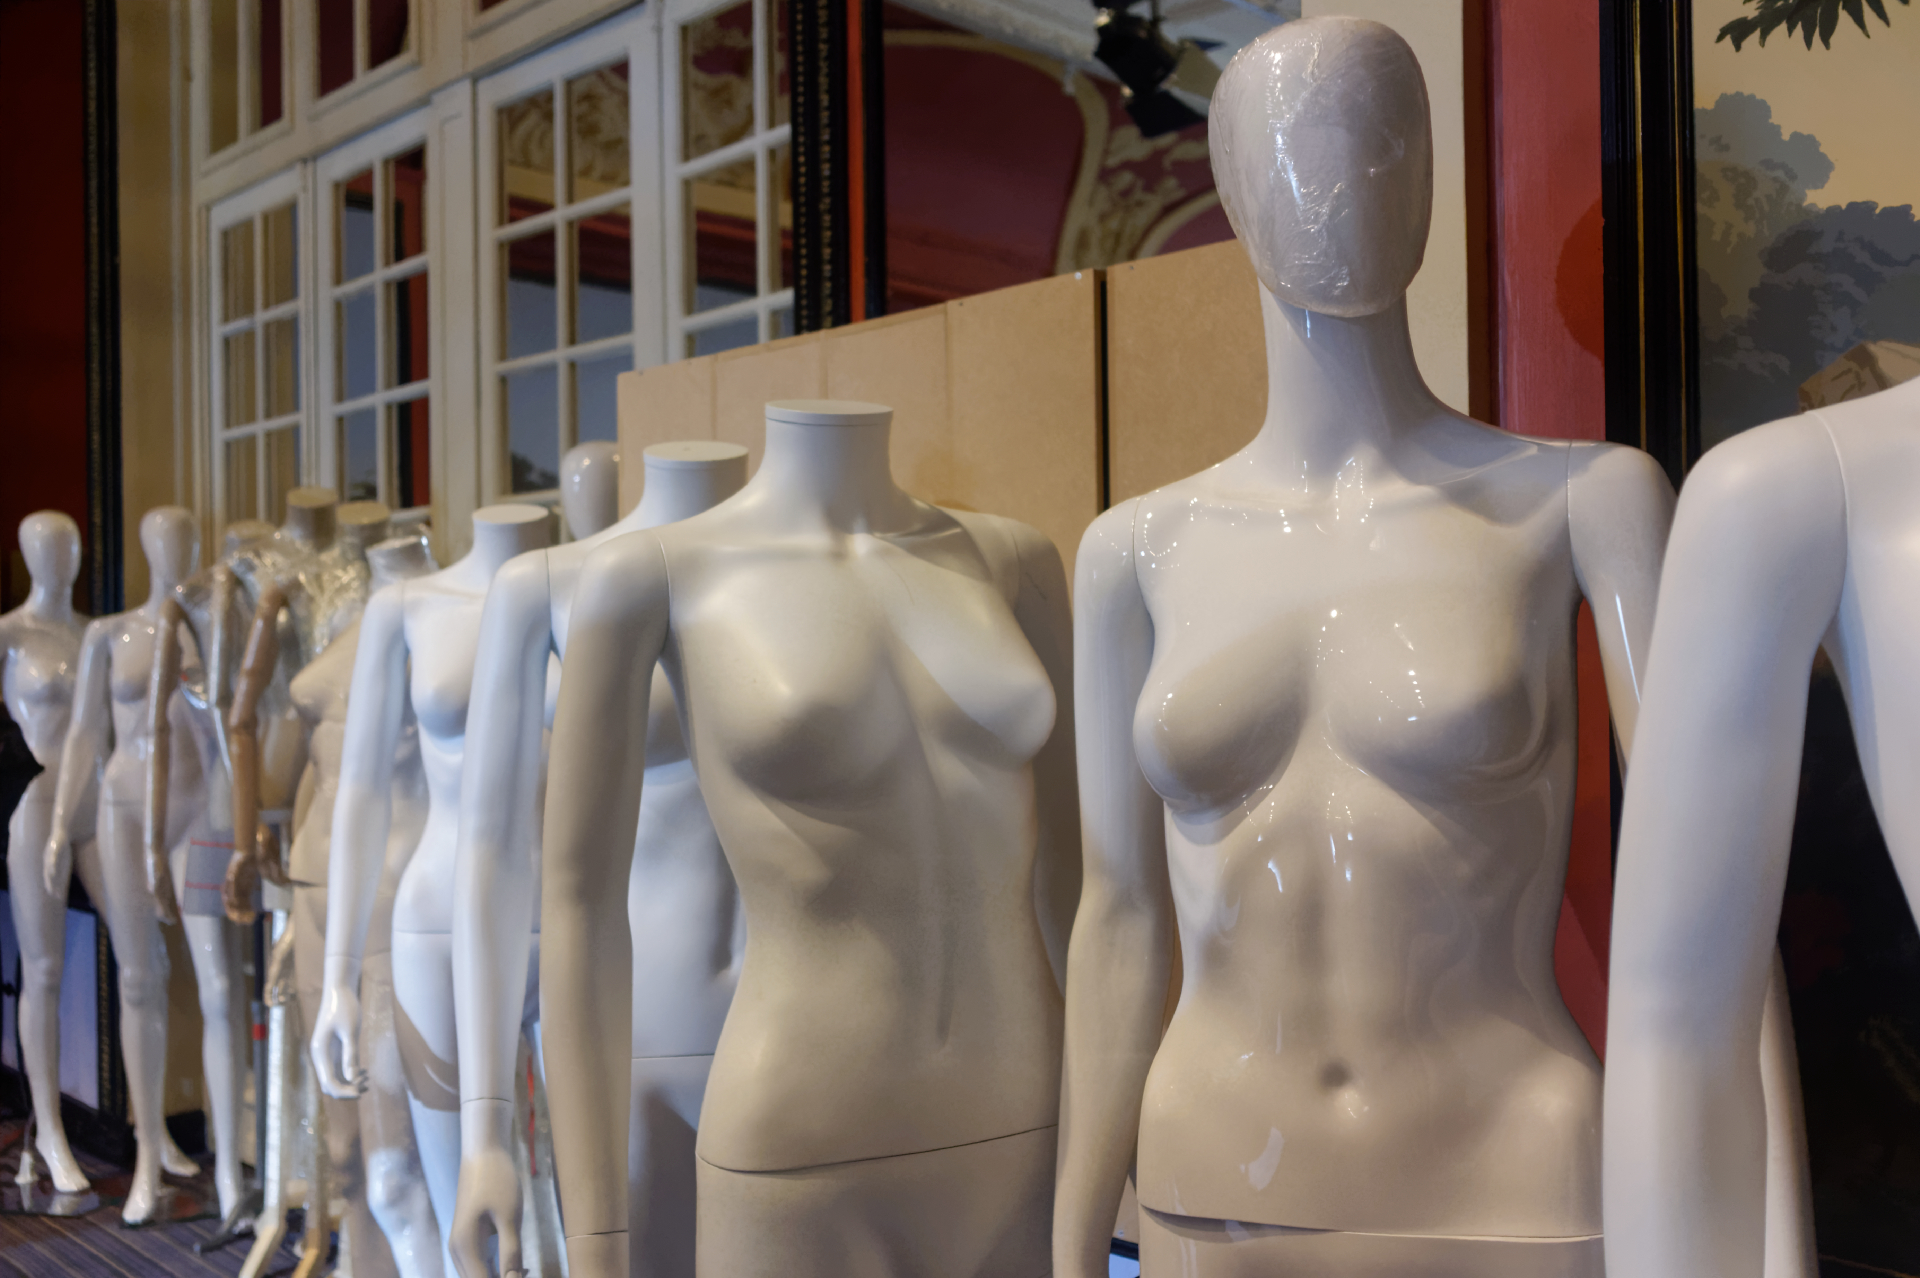 mannequin image by © akin abayomi